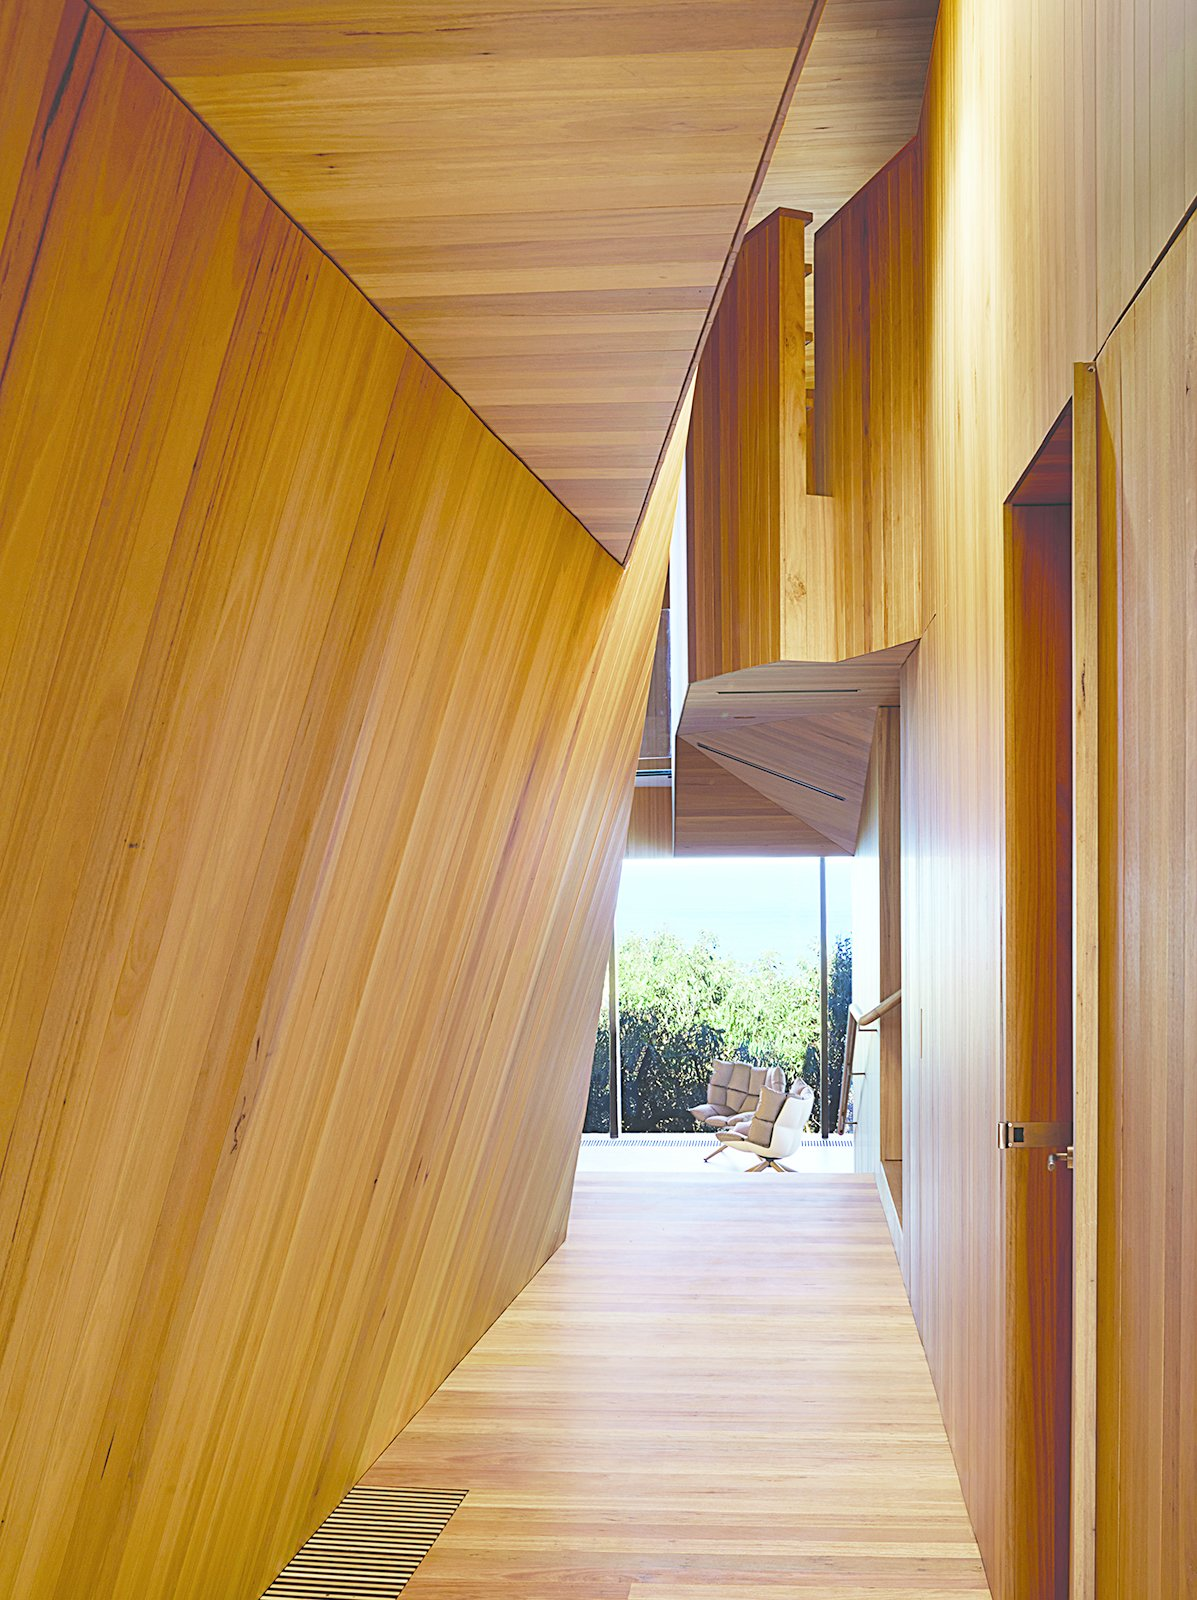 The house that architect John Wardle designed for a couple in coastal Fairhaven, Australia, twists and bends to comply with local laws that prevent buildings from disrupting the ridgeline views from the Great Ocean Road. This Surfer Rules the Ocean from a Cliffside House - Photo 3 of 10